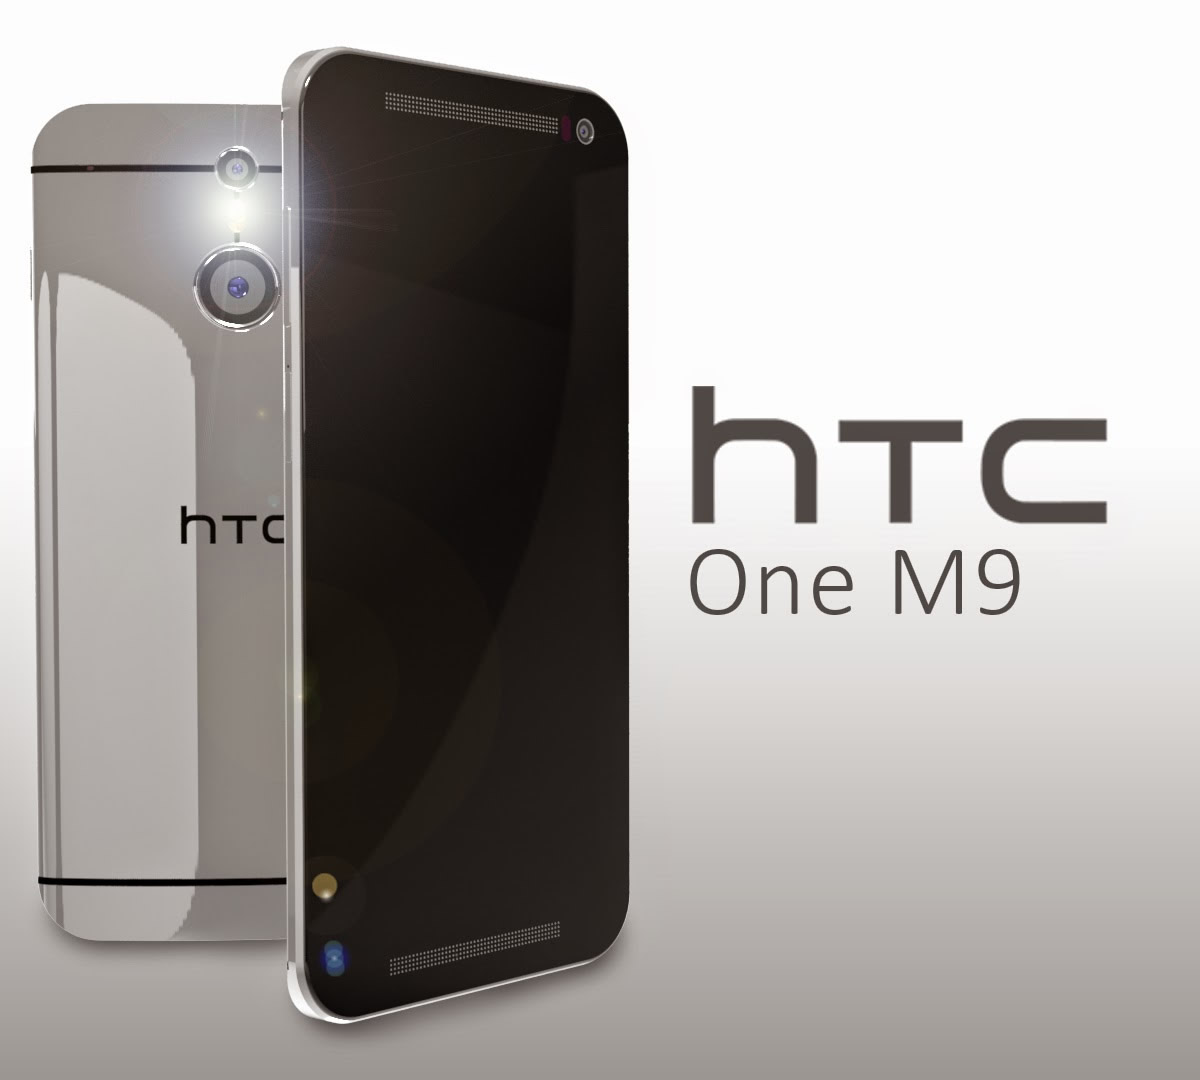 The HTC One M9 receives update to improve the camera 1